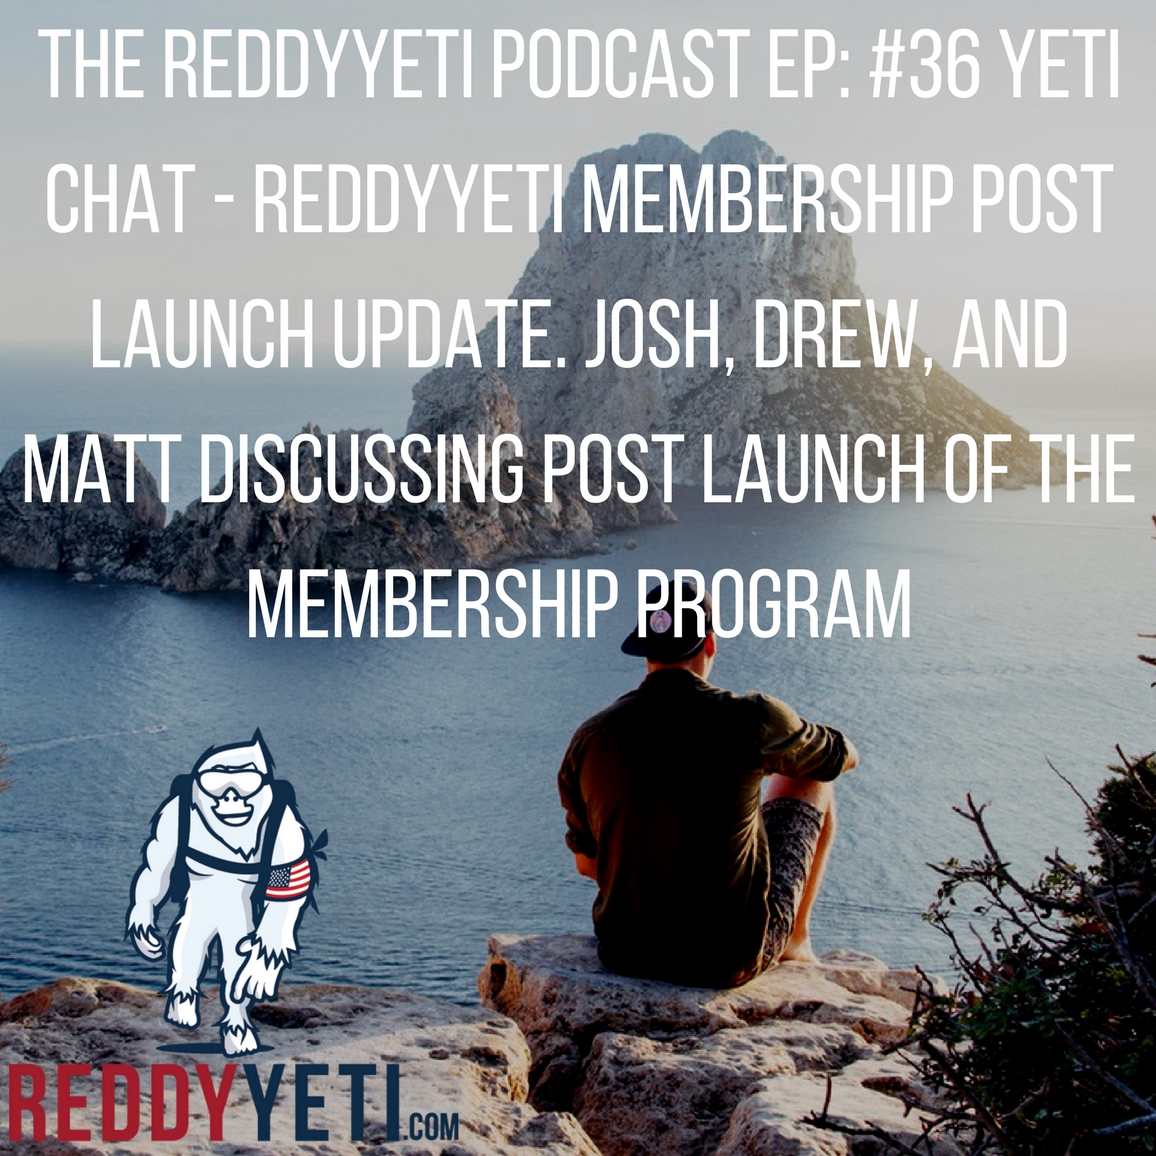 ReddyYeti Yeti chat podcast image.jpg